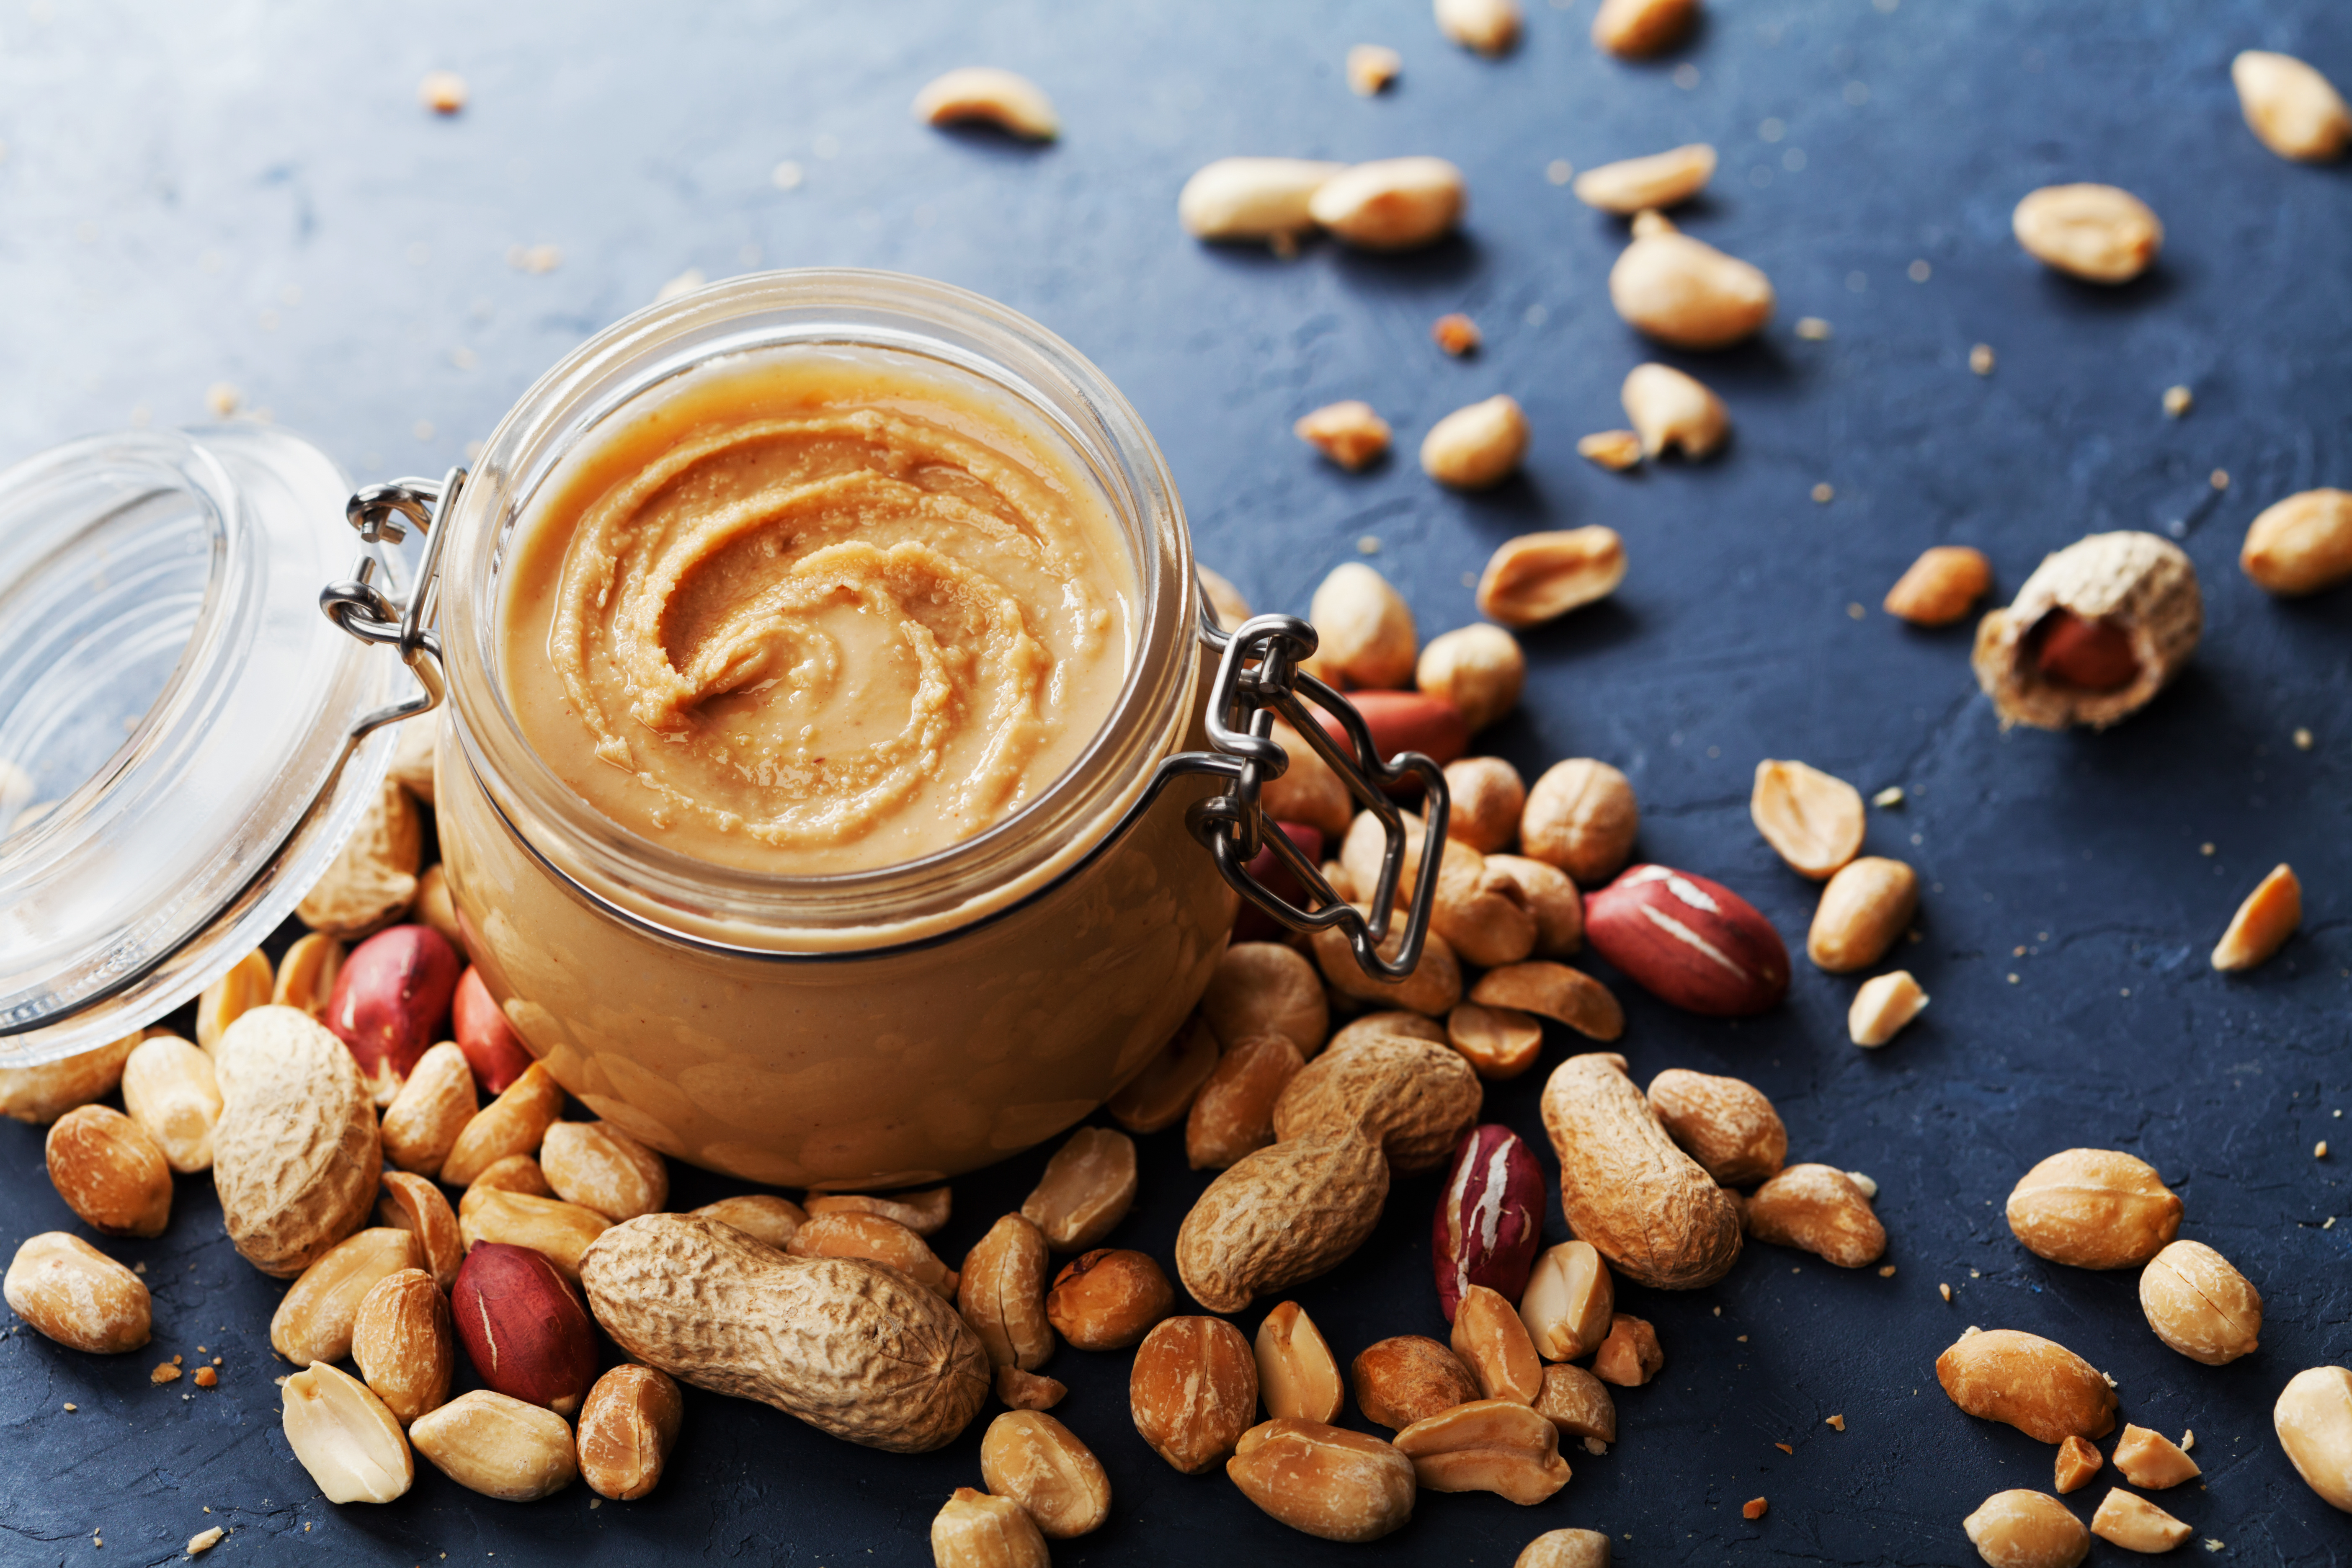 Recipe of the Day - Kitchen Savvy: Homemade Nut Butter in Minutes